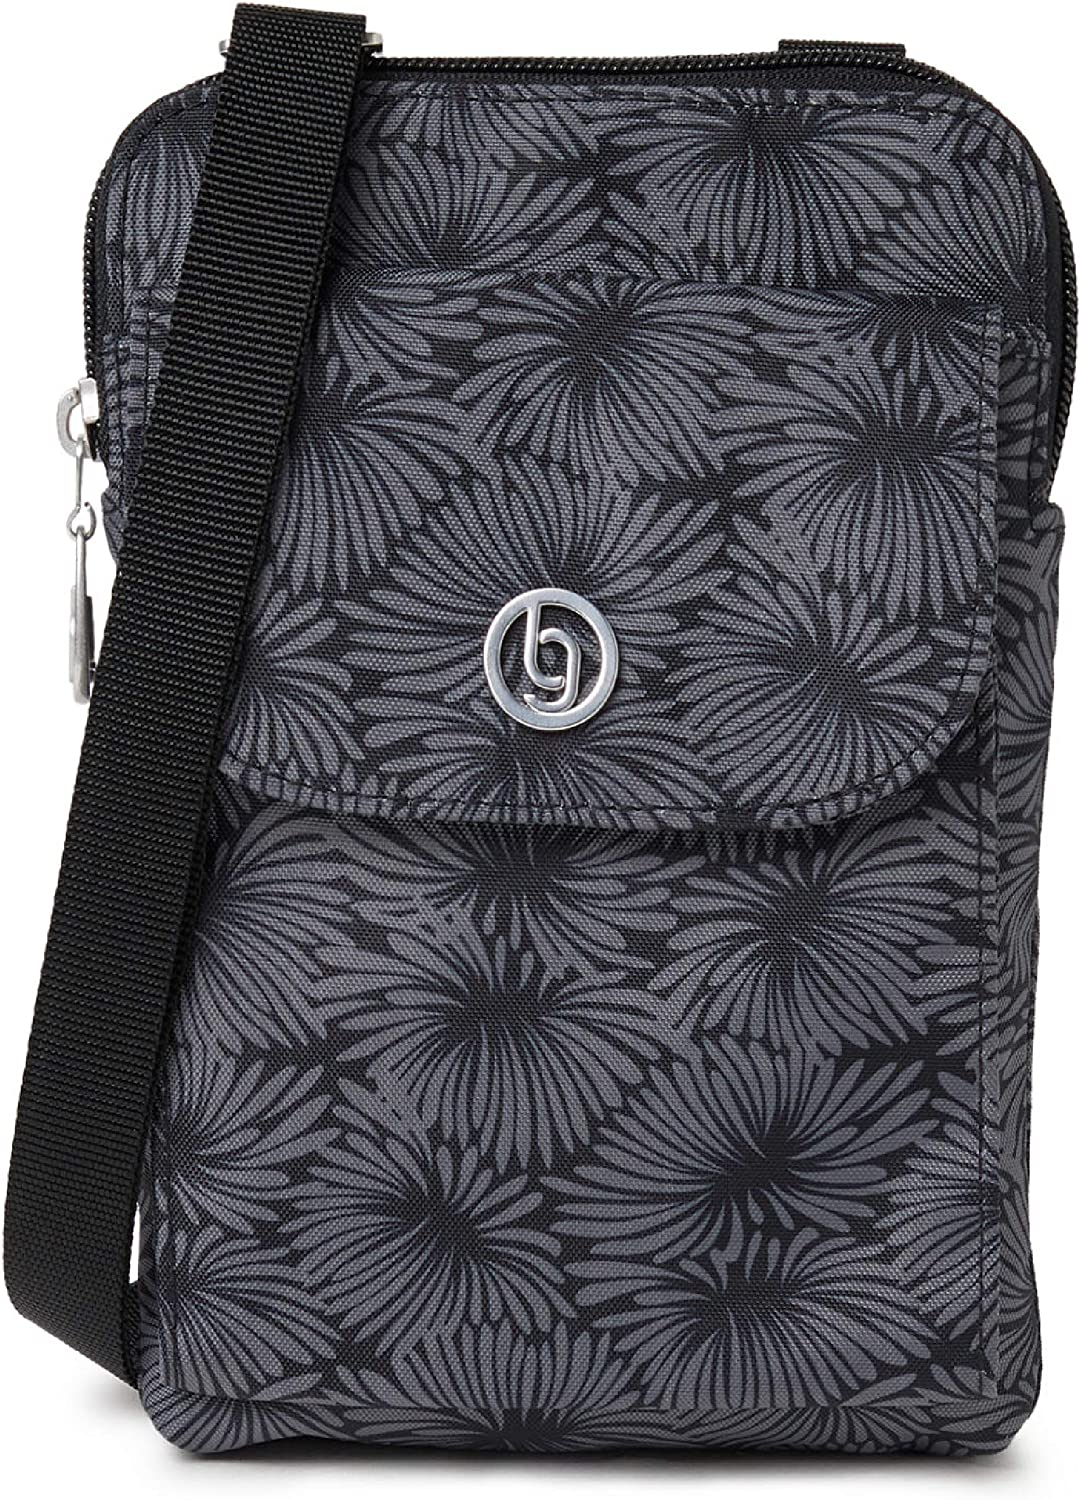 Baggallini San Diego Mini Crossbody – Lightweight, Water-Resistant with Adjustable Strap and RFID Protection, Stylish Design